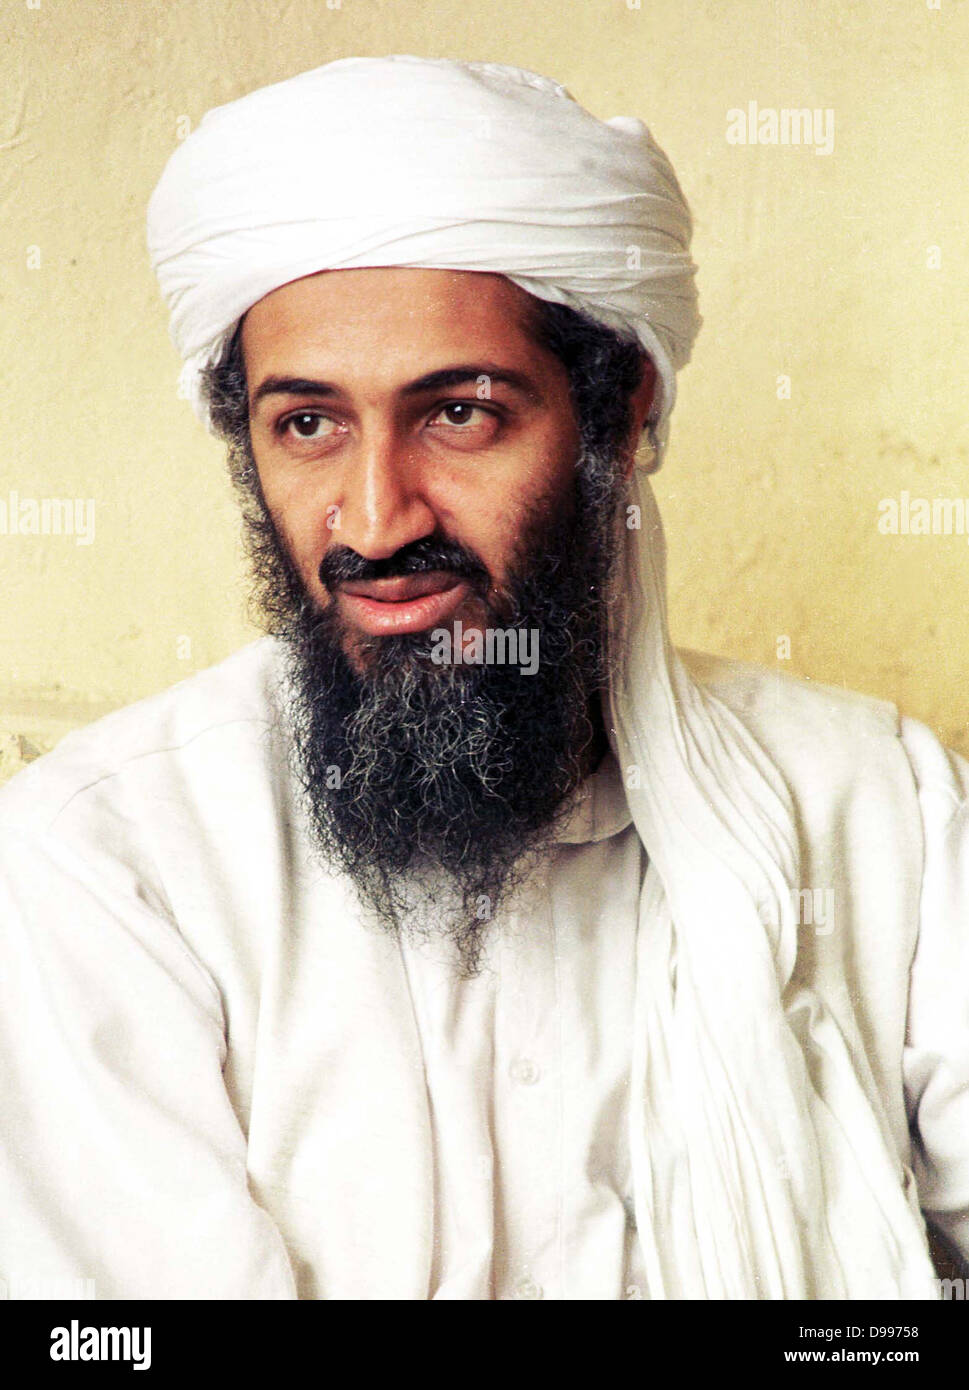 Osama bin Laden  born March 10, 1957. member of the prominent Saudi bin Laden family and the founder of the Islamic - Stock Image